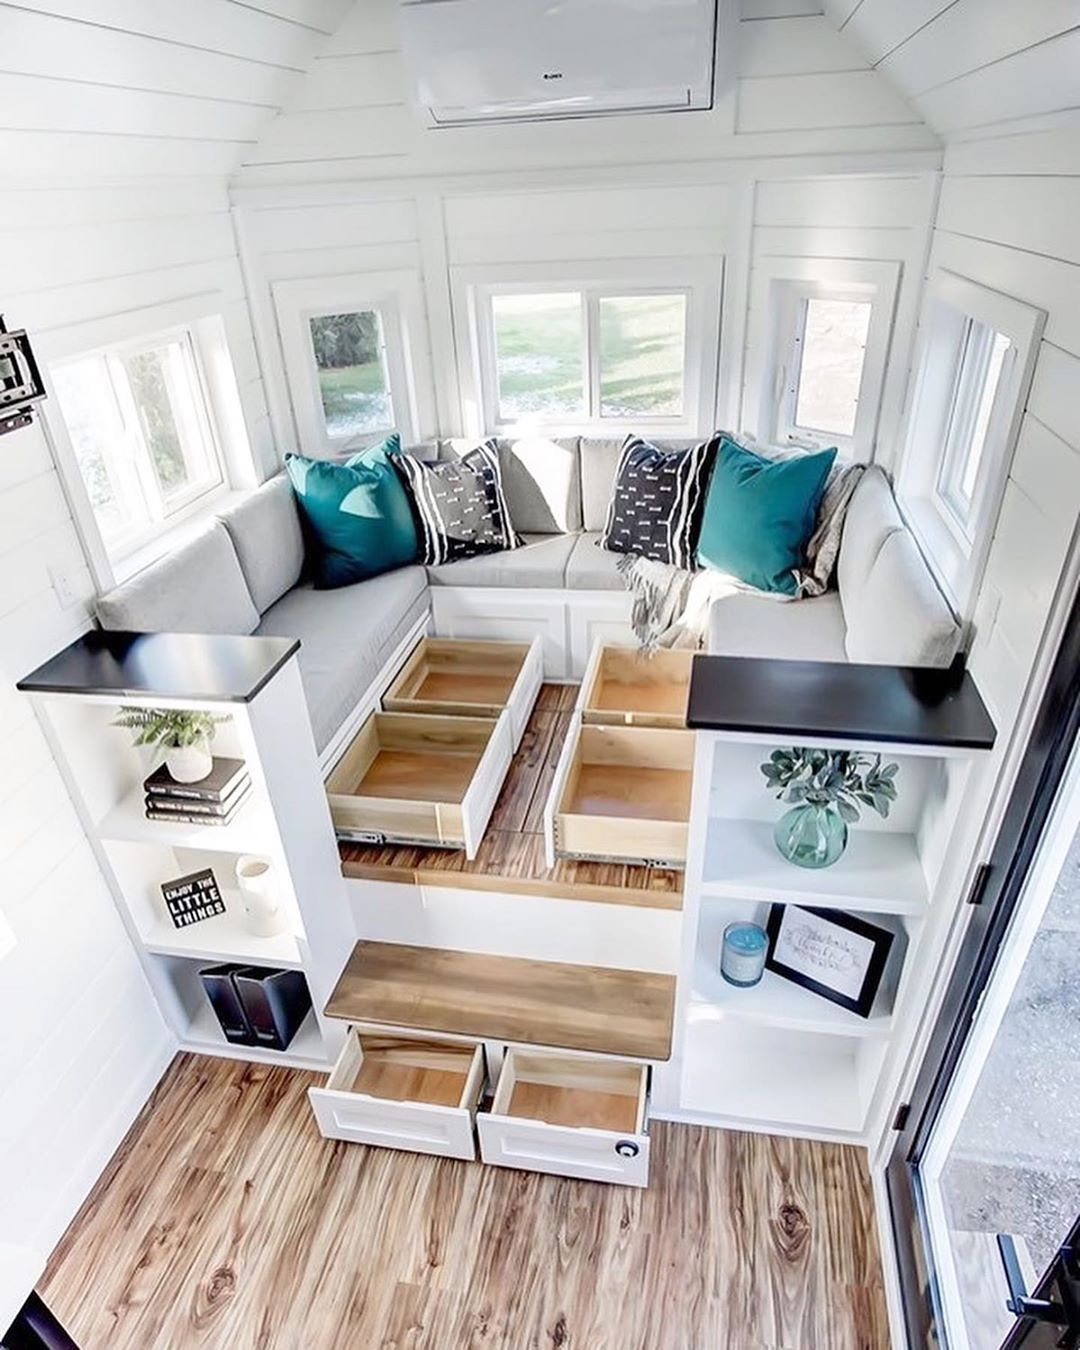 Tiny Homes On Instagram How Awesome Are These Creative Storage Solutions What Do You Think O Tiny House Storage Tiny House Organization Tiny House Interior